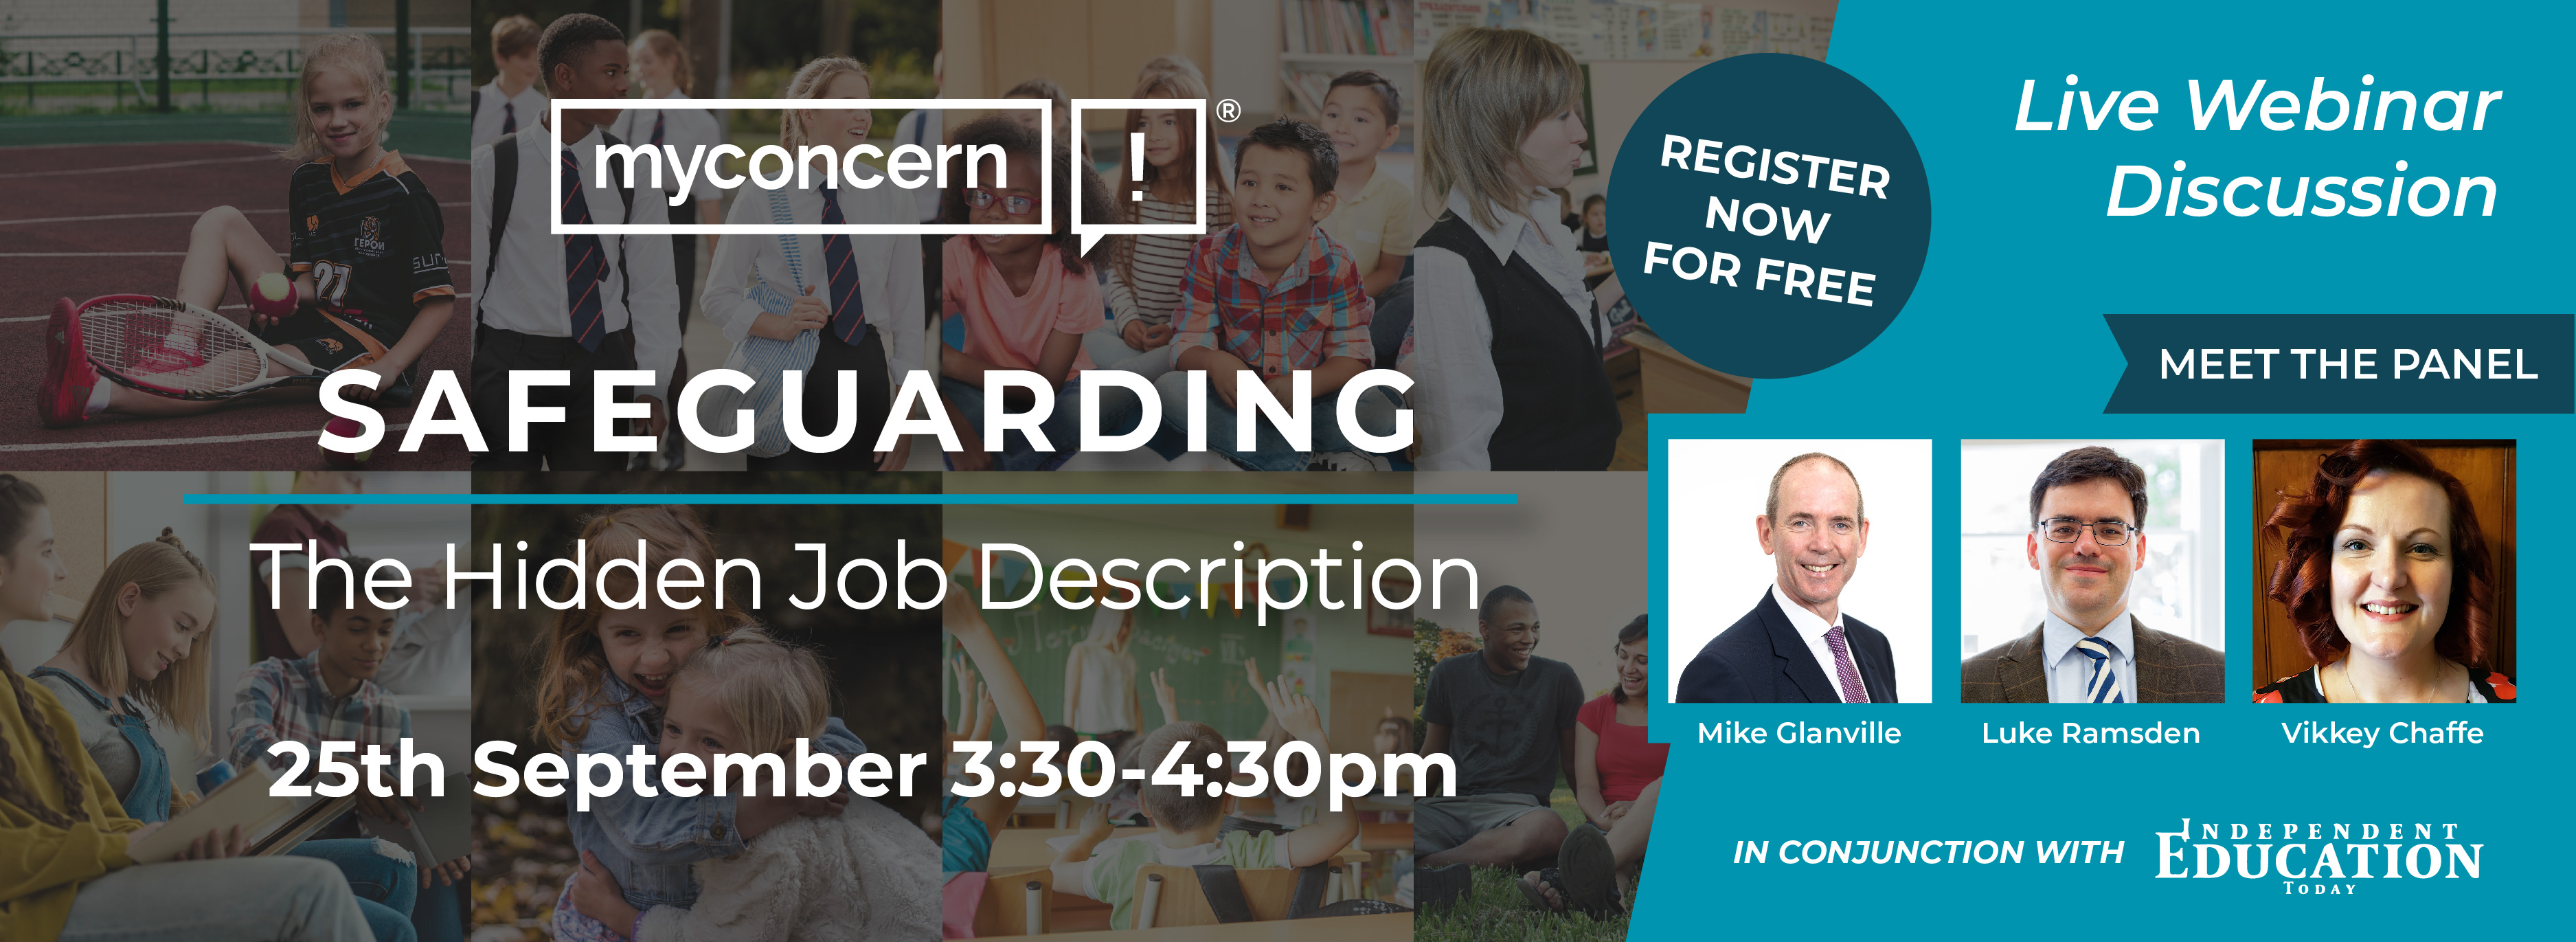 Safeguarding-The-Hidden-Job-Description-Webinar-2-with-Independent-Education-Today-Logo-01